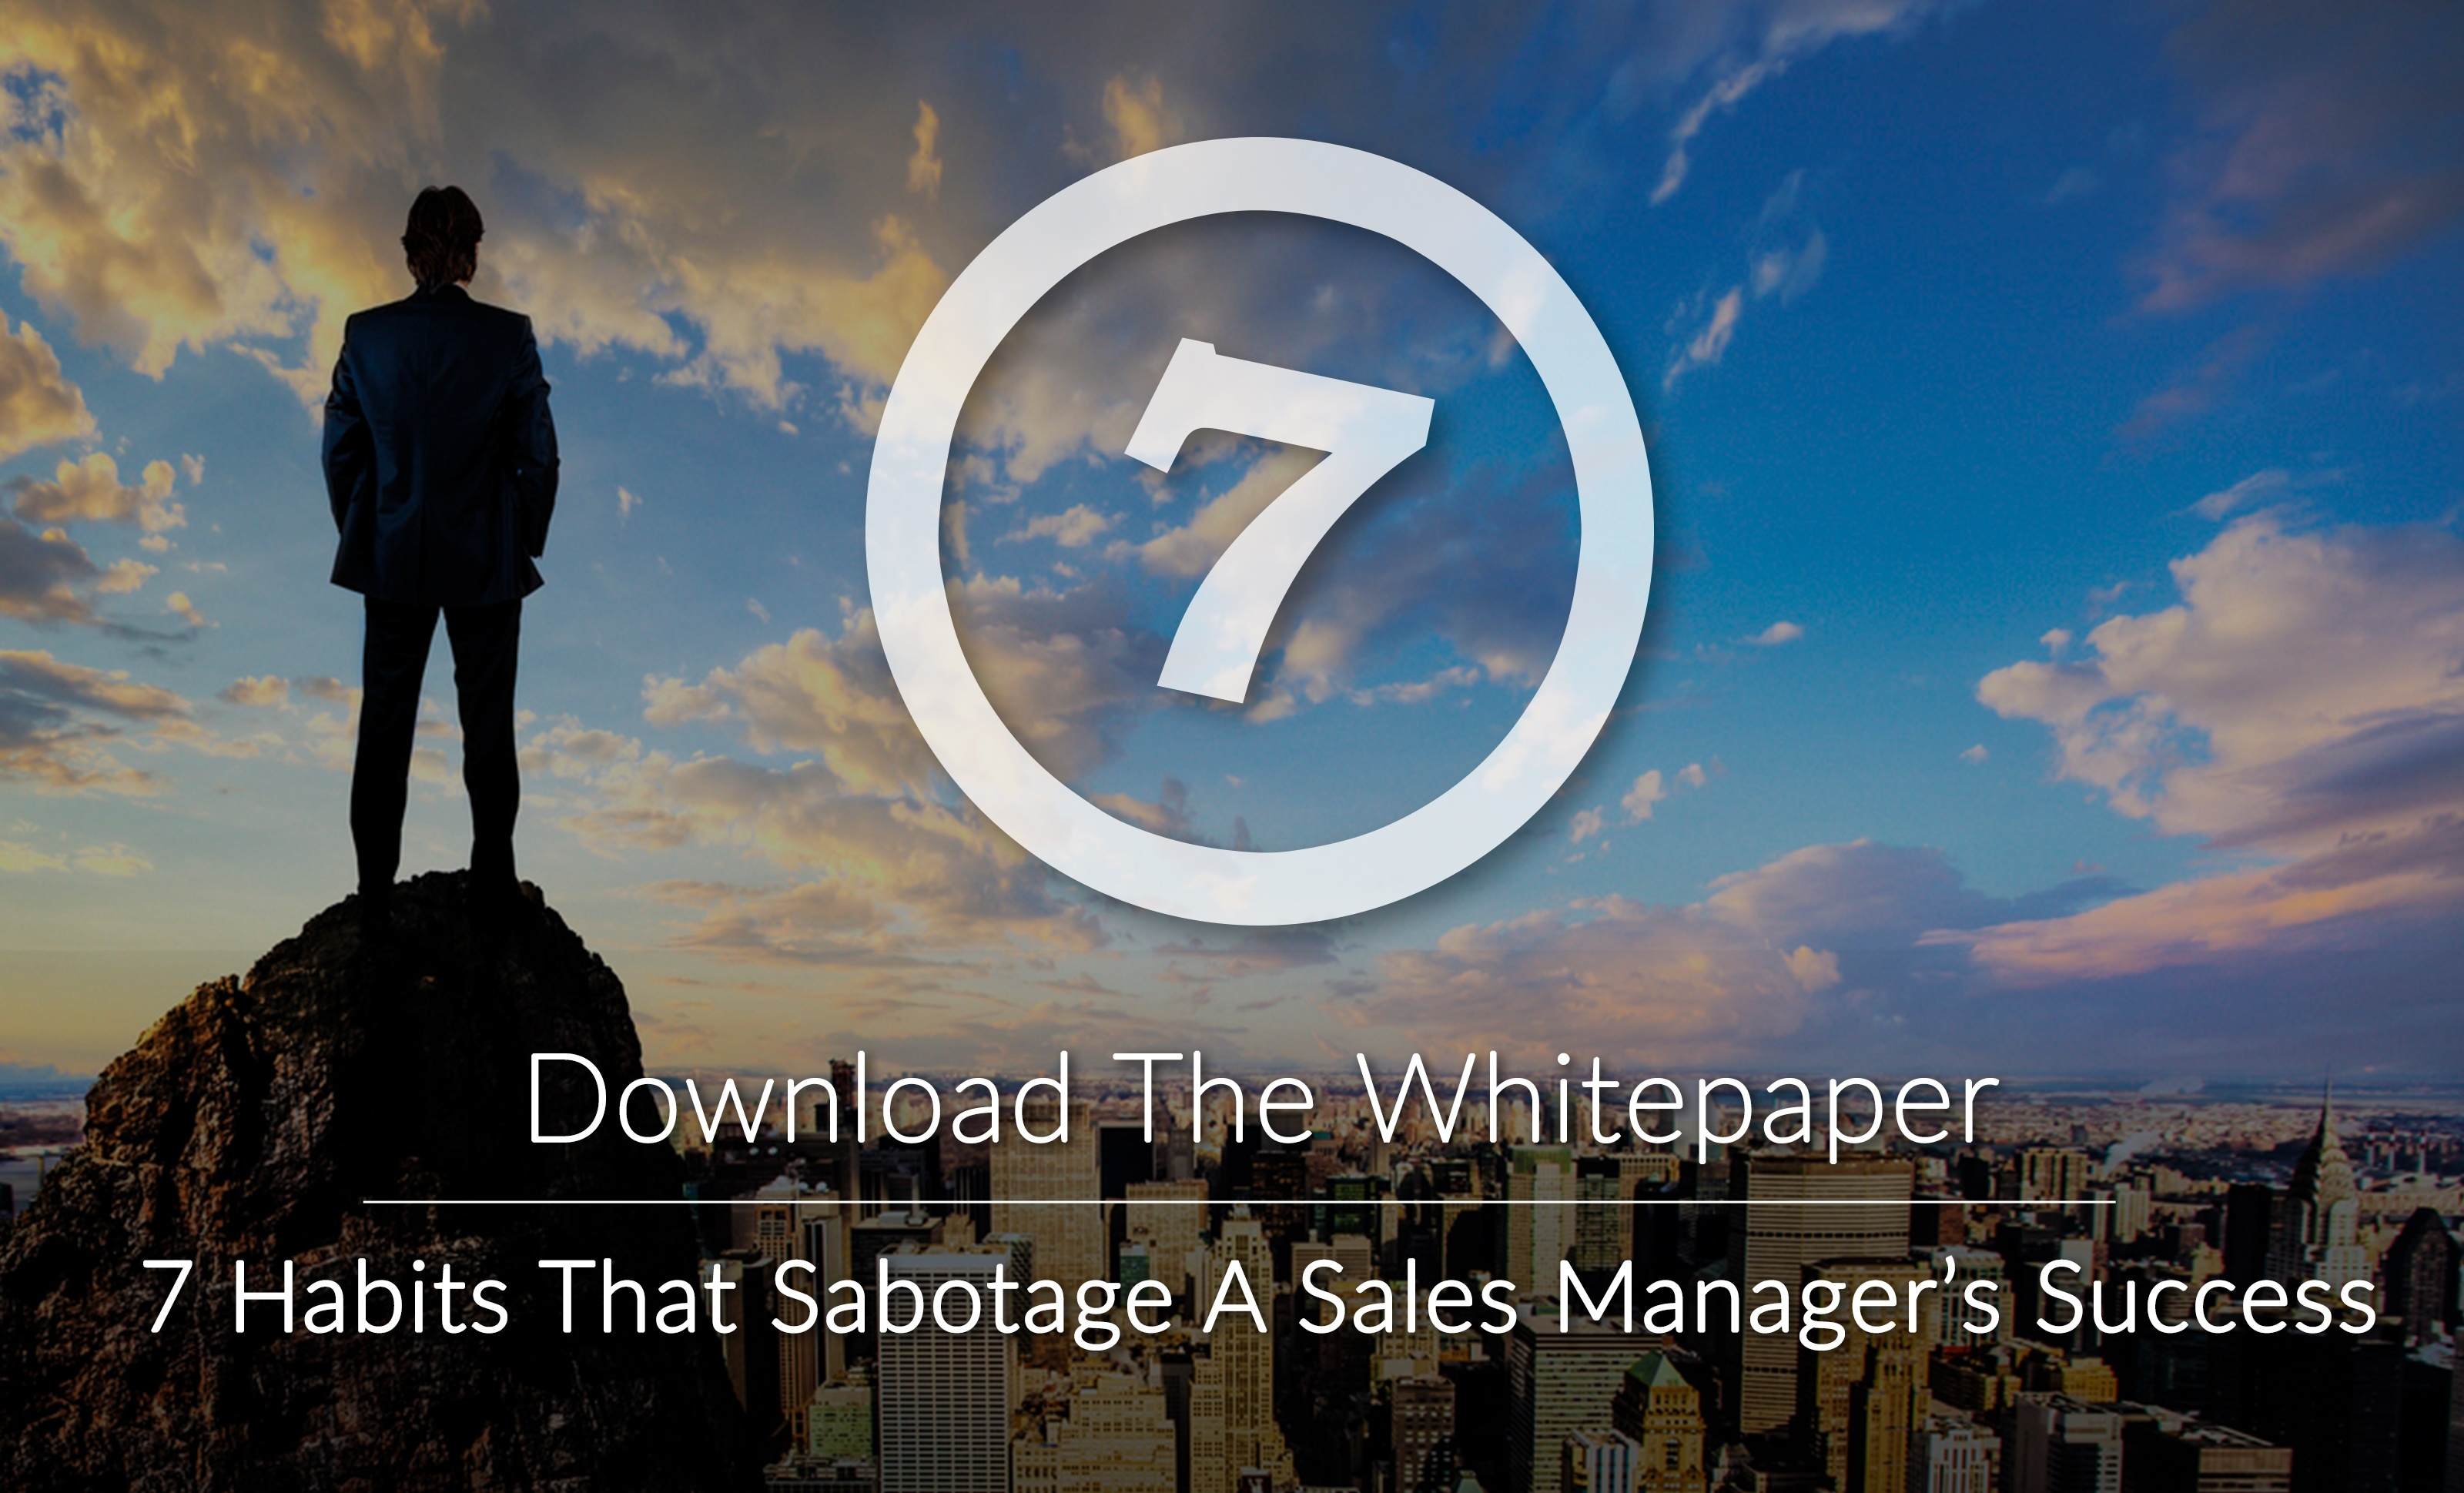 7 Habits That Sabotage A Sales Manager's Success